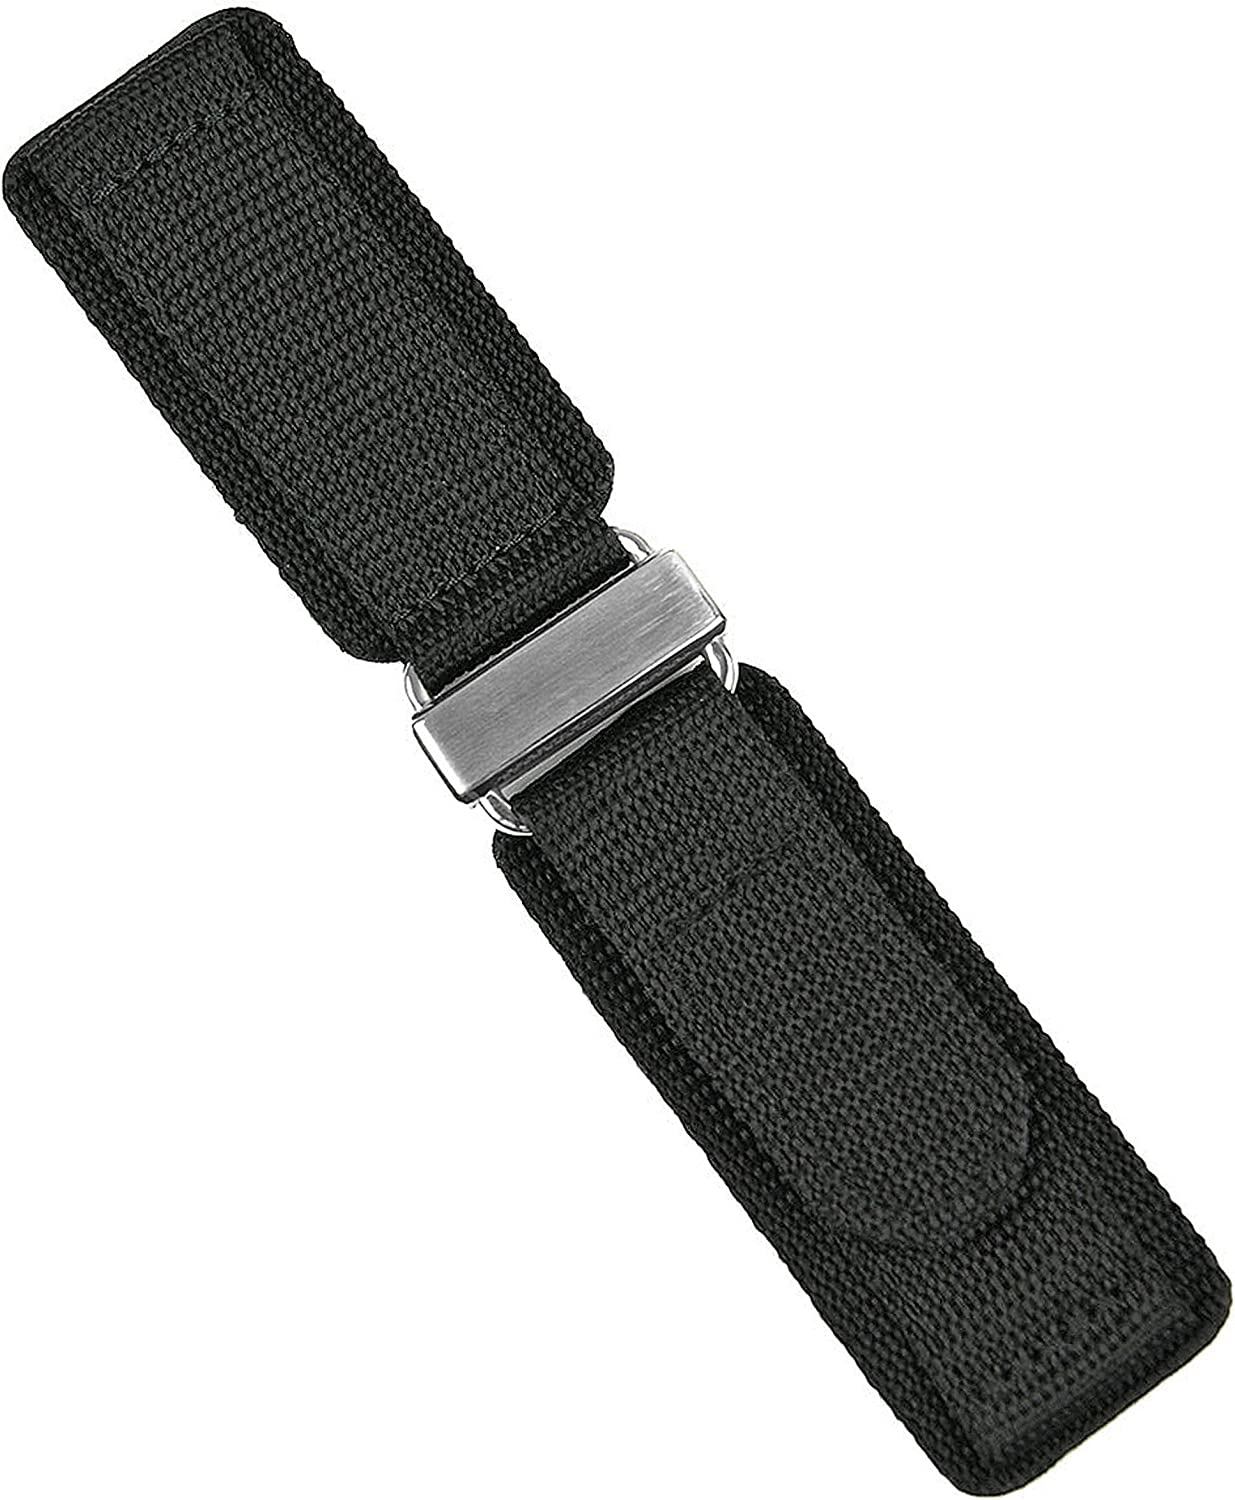 B R Bands 24mm Black Nylon Hook Quality inspection Watch Credence Band - Strap N' Sta Loop